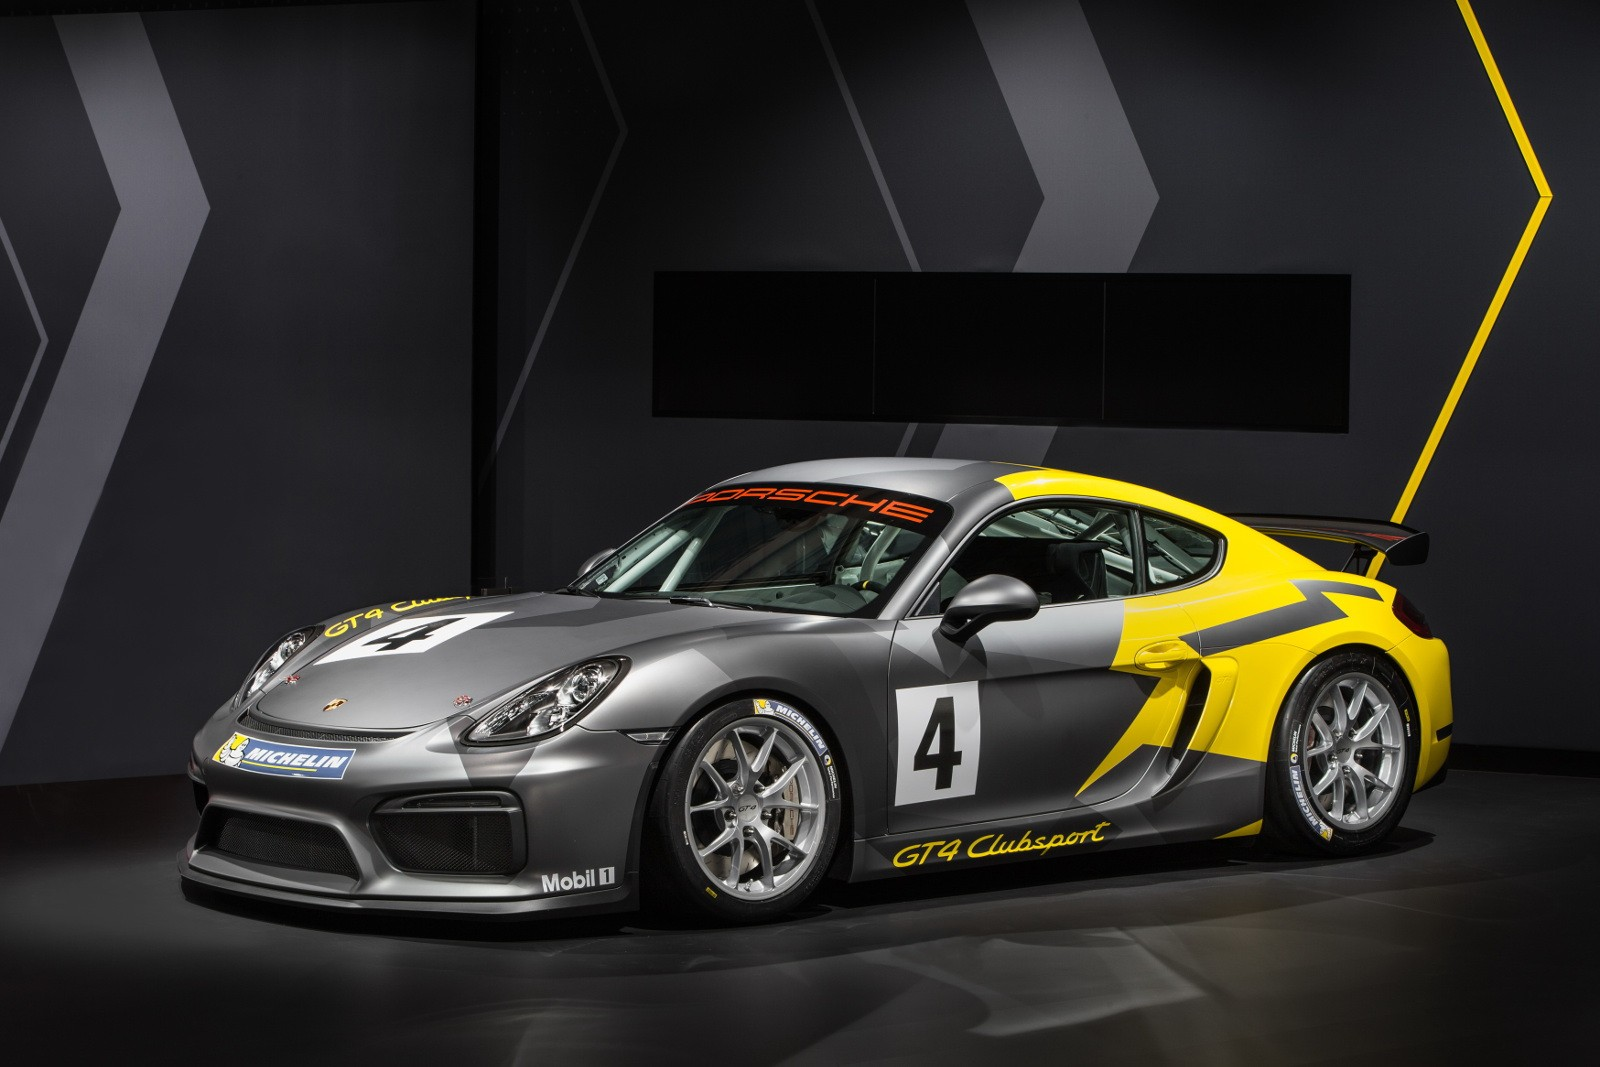 porsche cayman gt4 clubsport racecar shows pdk fetishy stripped out interior in la autoevolution - 2015 Porsche Cayman Gt4 Interior